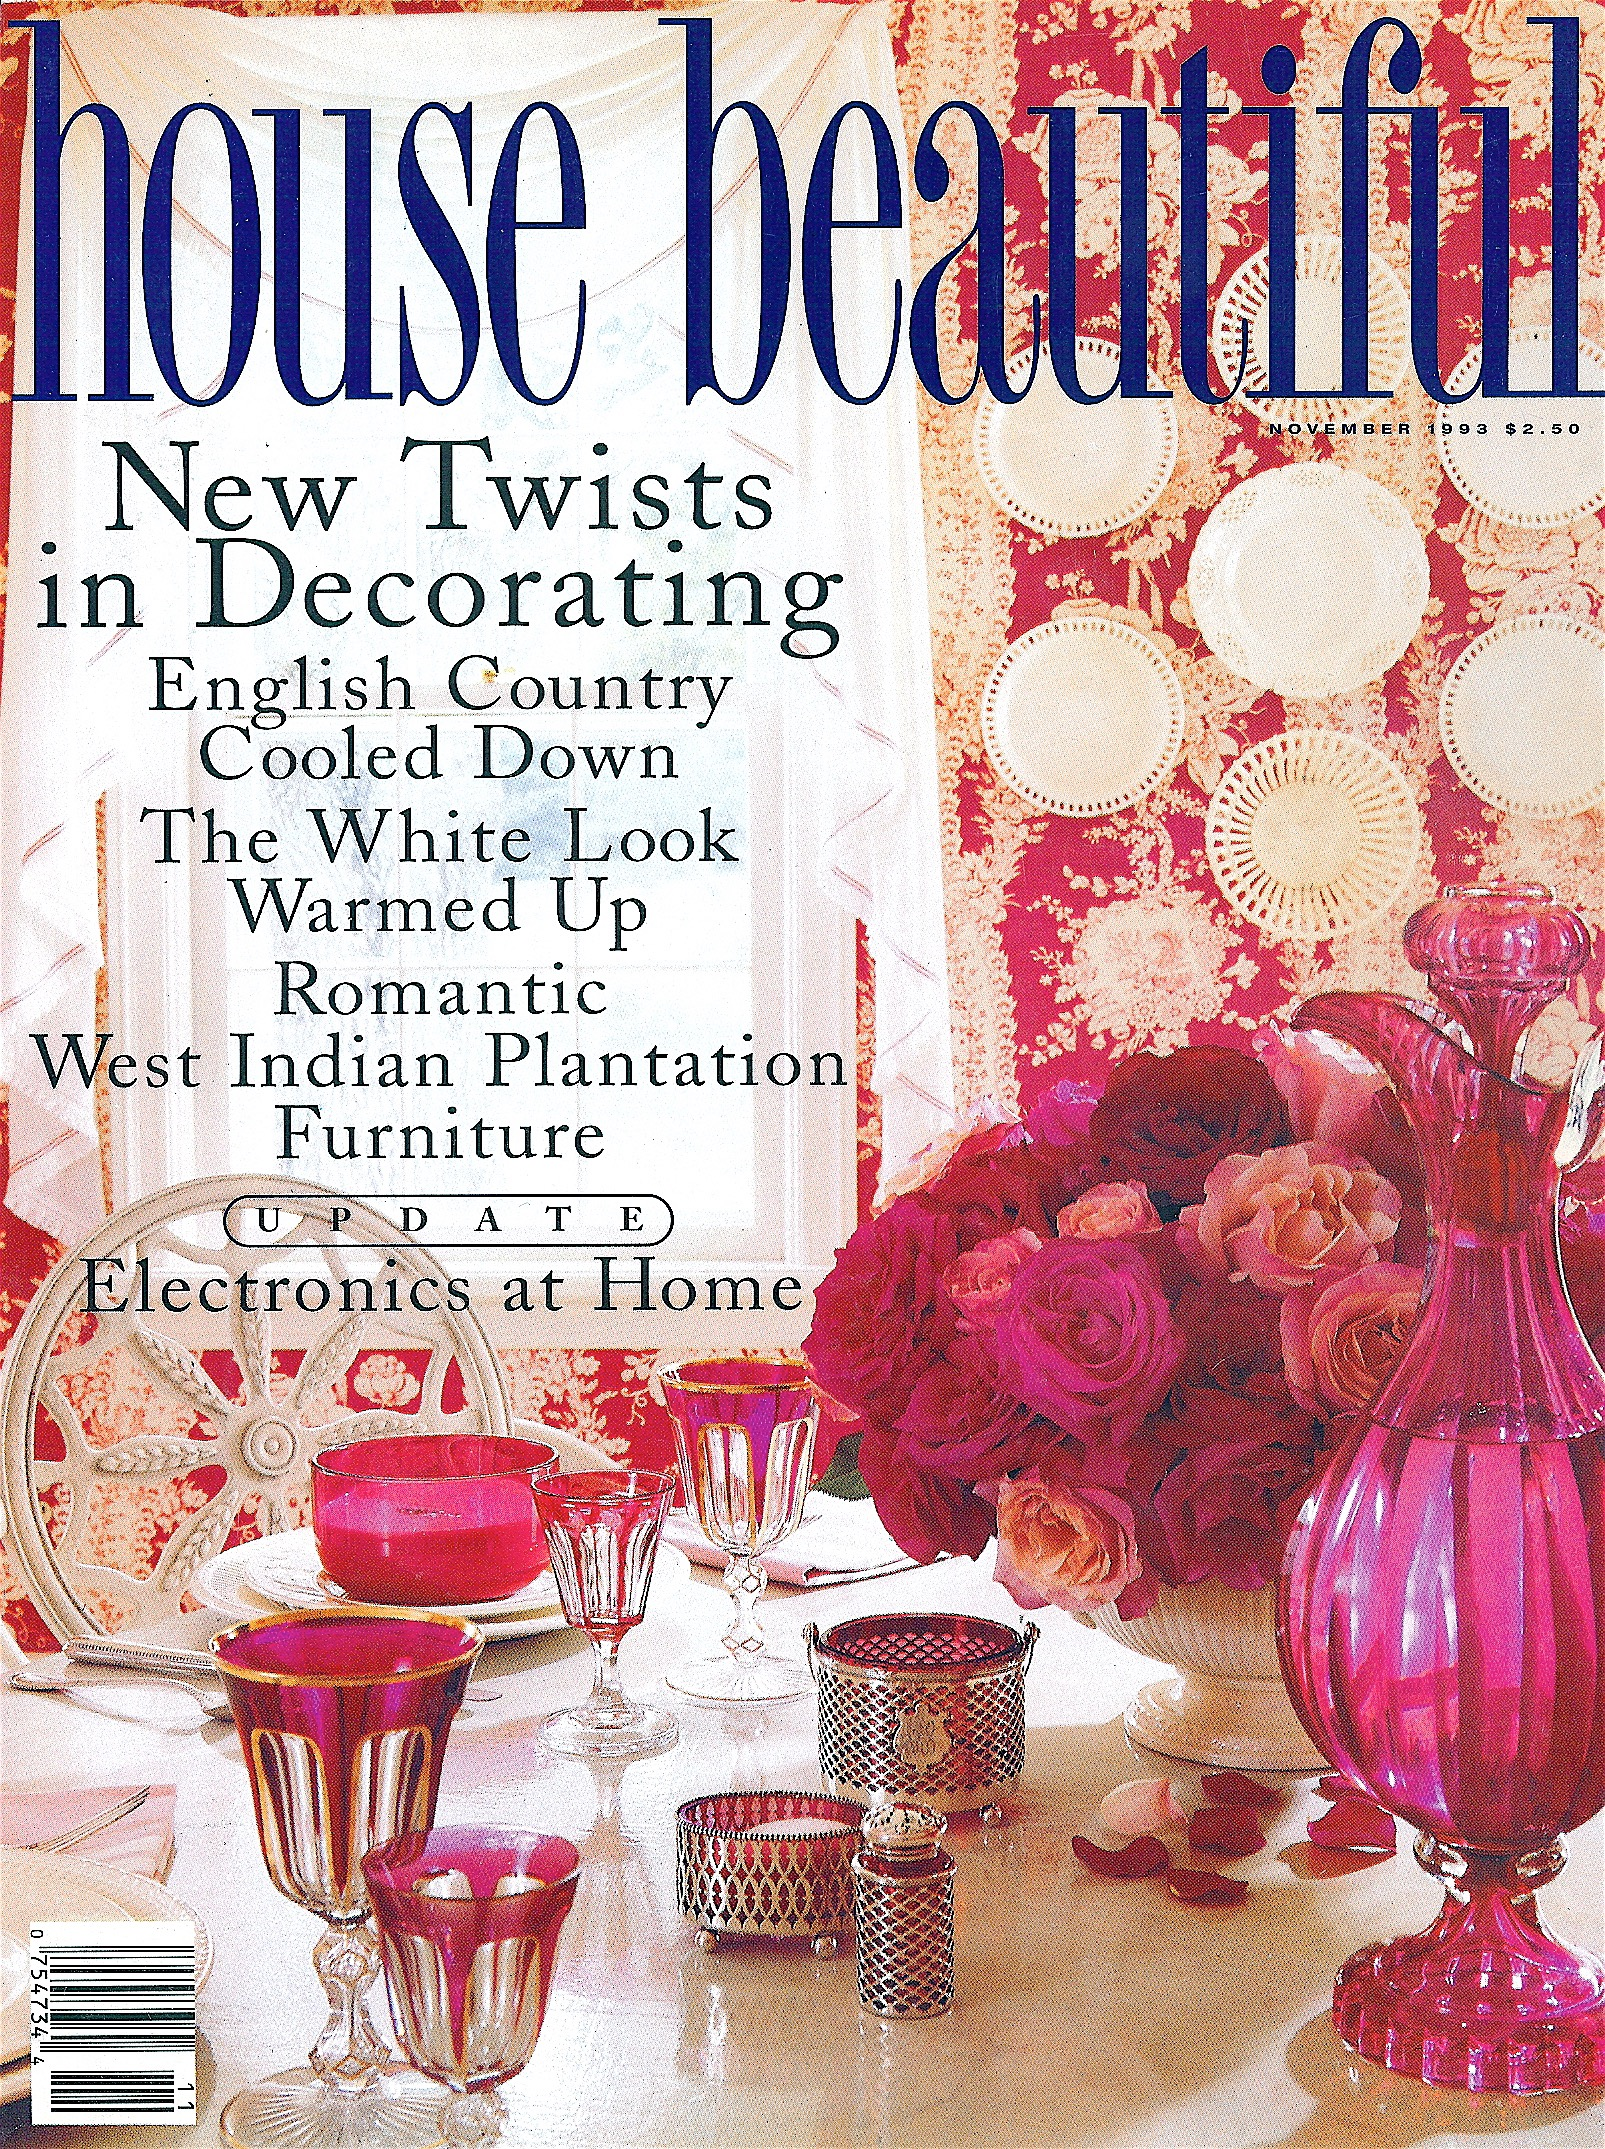 Coffin & King Press - Thomas Coffin and Julia King gilded objects and custom furniture featured in House Beautiful Magazine